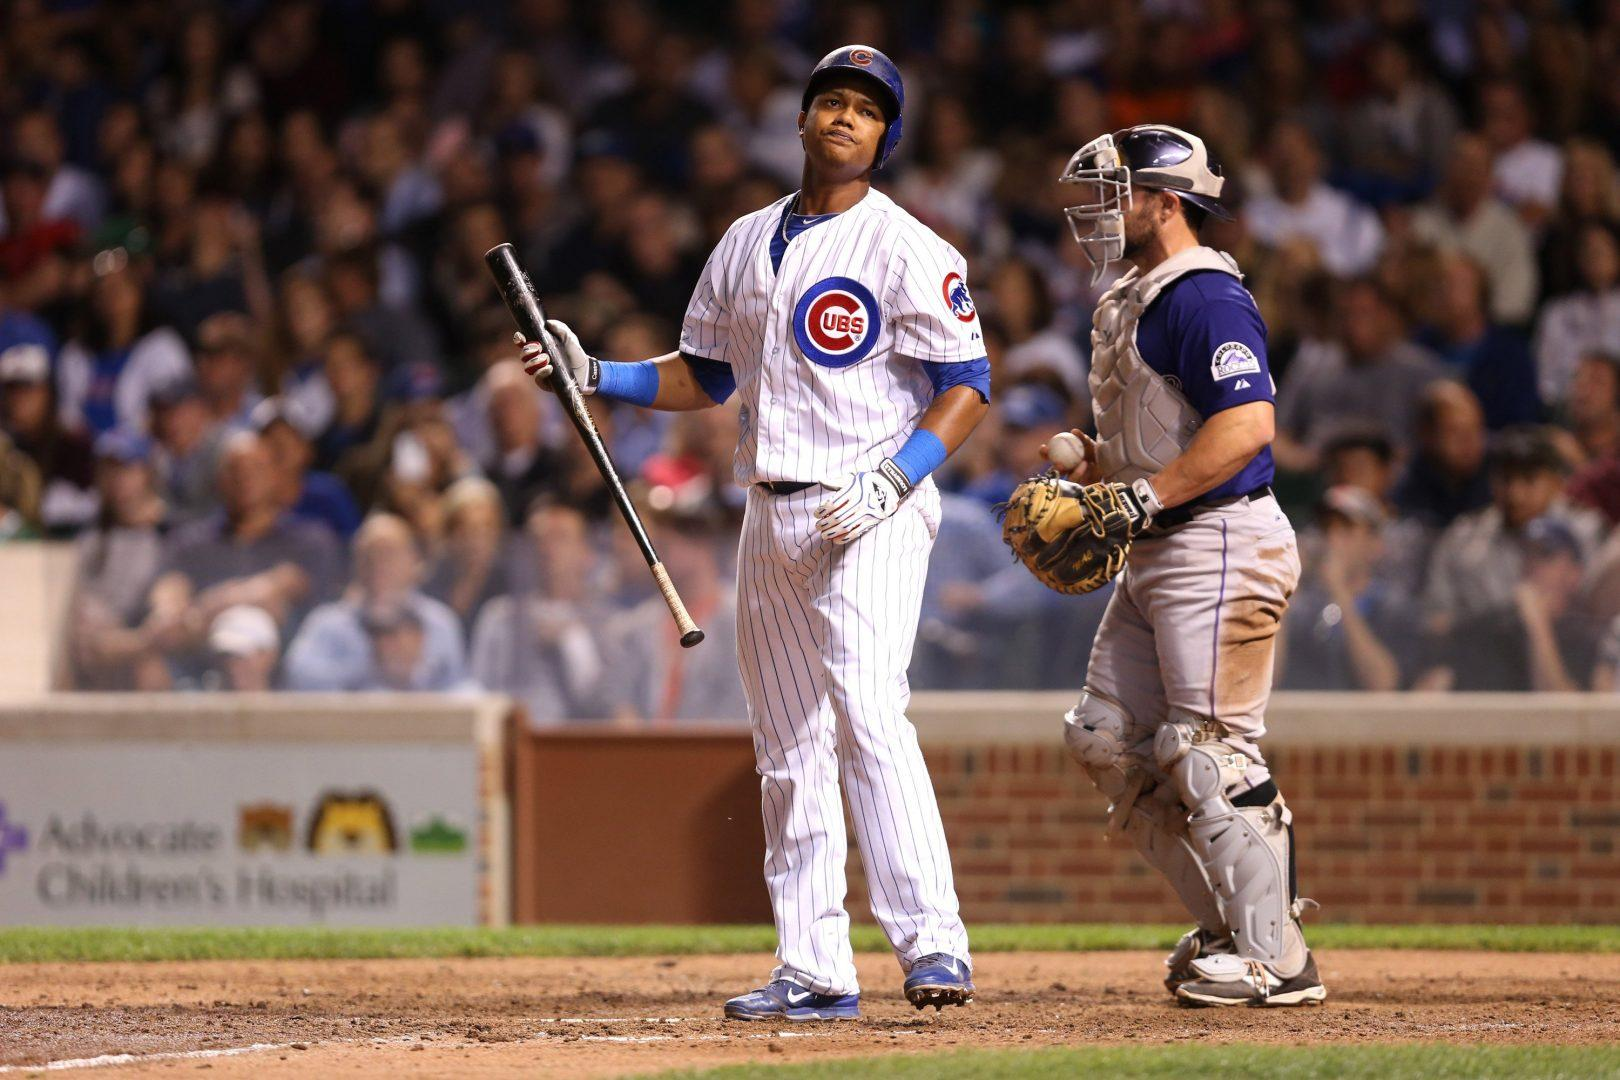 The Chicago Cubs' Starlin Castro reacts after striking out in the sixth inning against the Colorado Rockies at Wrigley Field in Chicago on Wednesday, July 30, 2014. (Chris Sweda /Chicago Tribune/MCT)